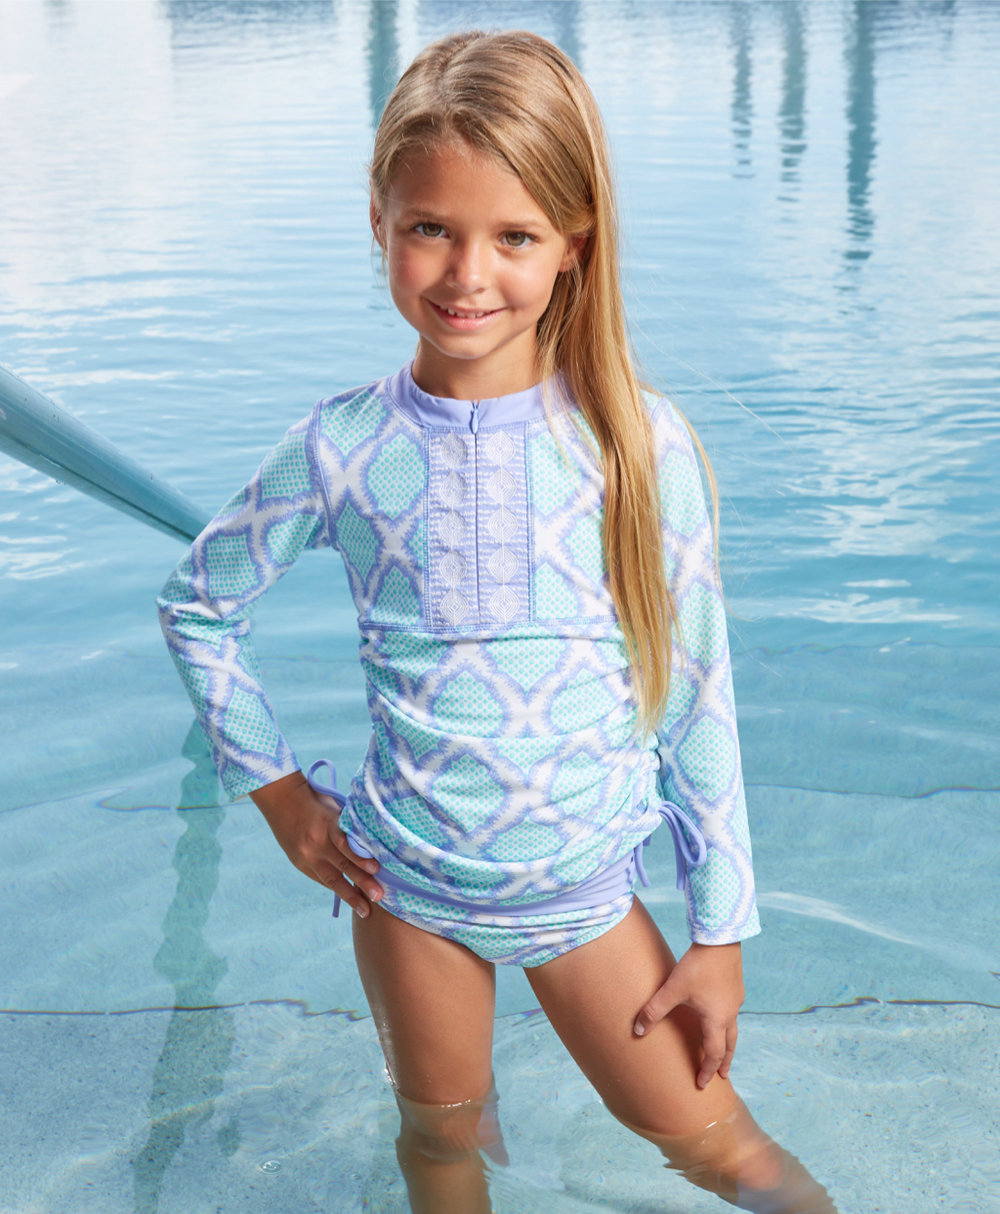 Little-Girls-Rashguard-Sets_Cabana-Life_Cabana-Coast-Rashguard-Set-1.jpg